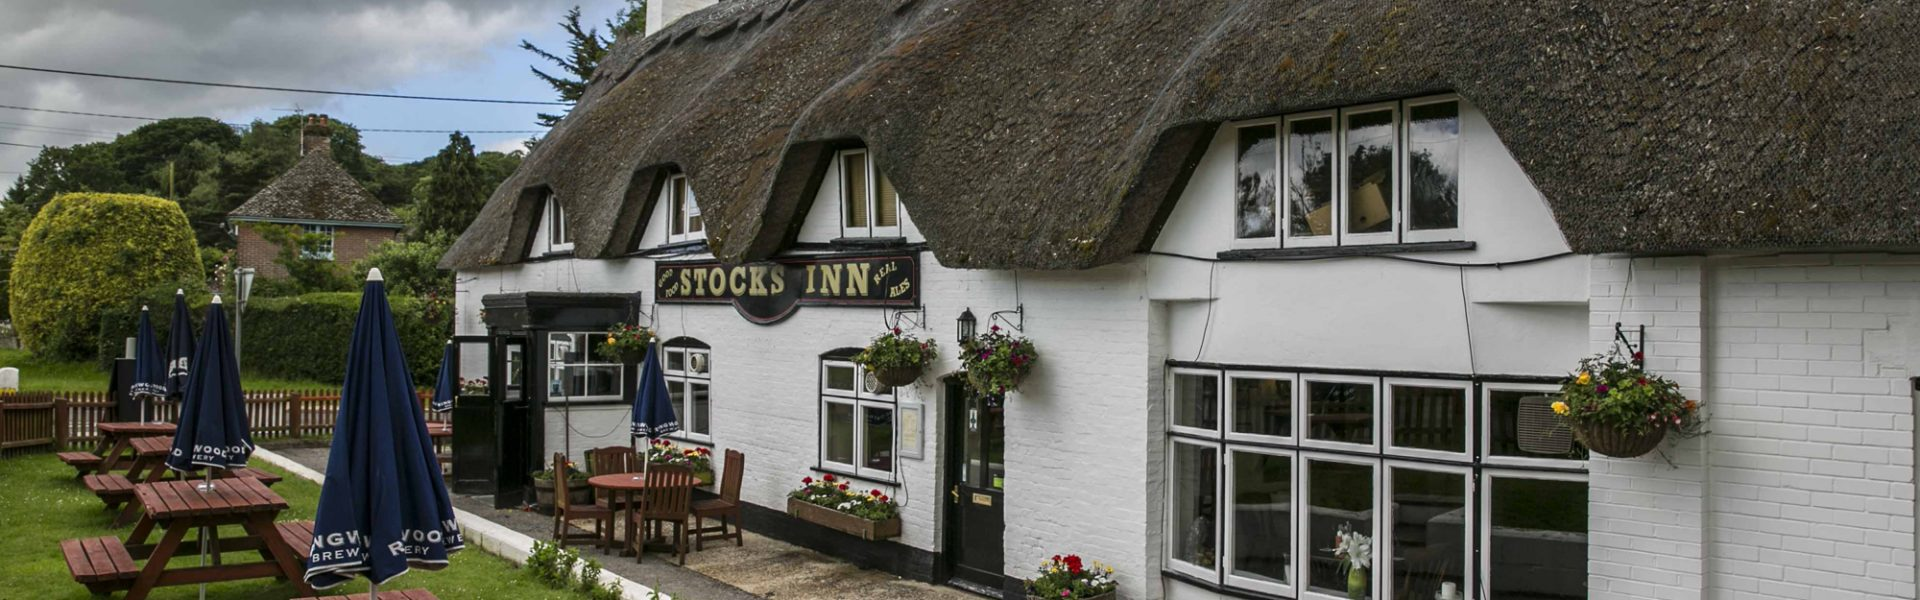 Stocks Inn